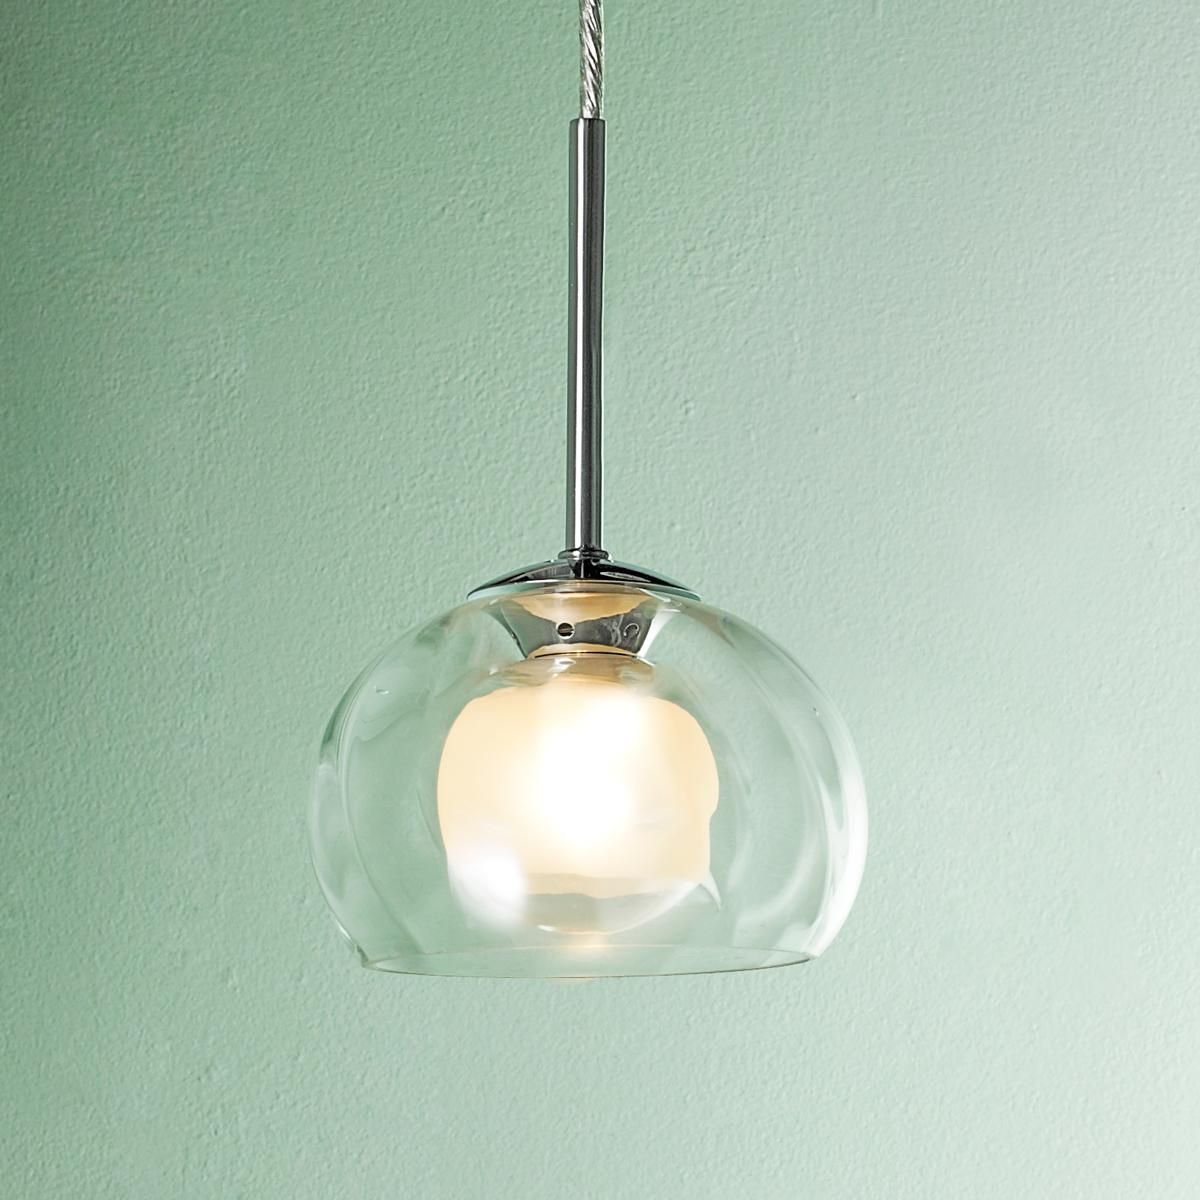 Optic Swirl with Satin Glass Dome Pendant | Shades of Light | $99 ...